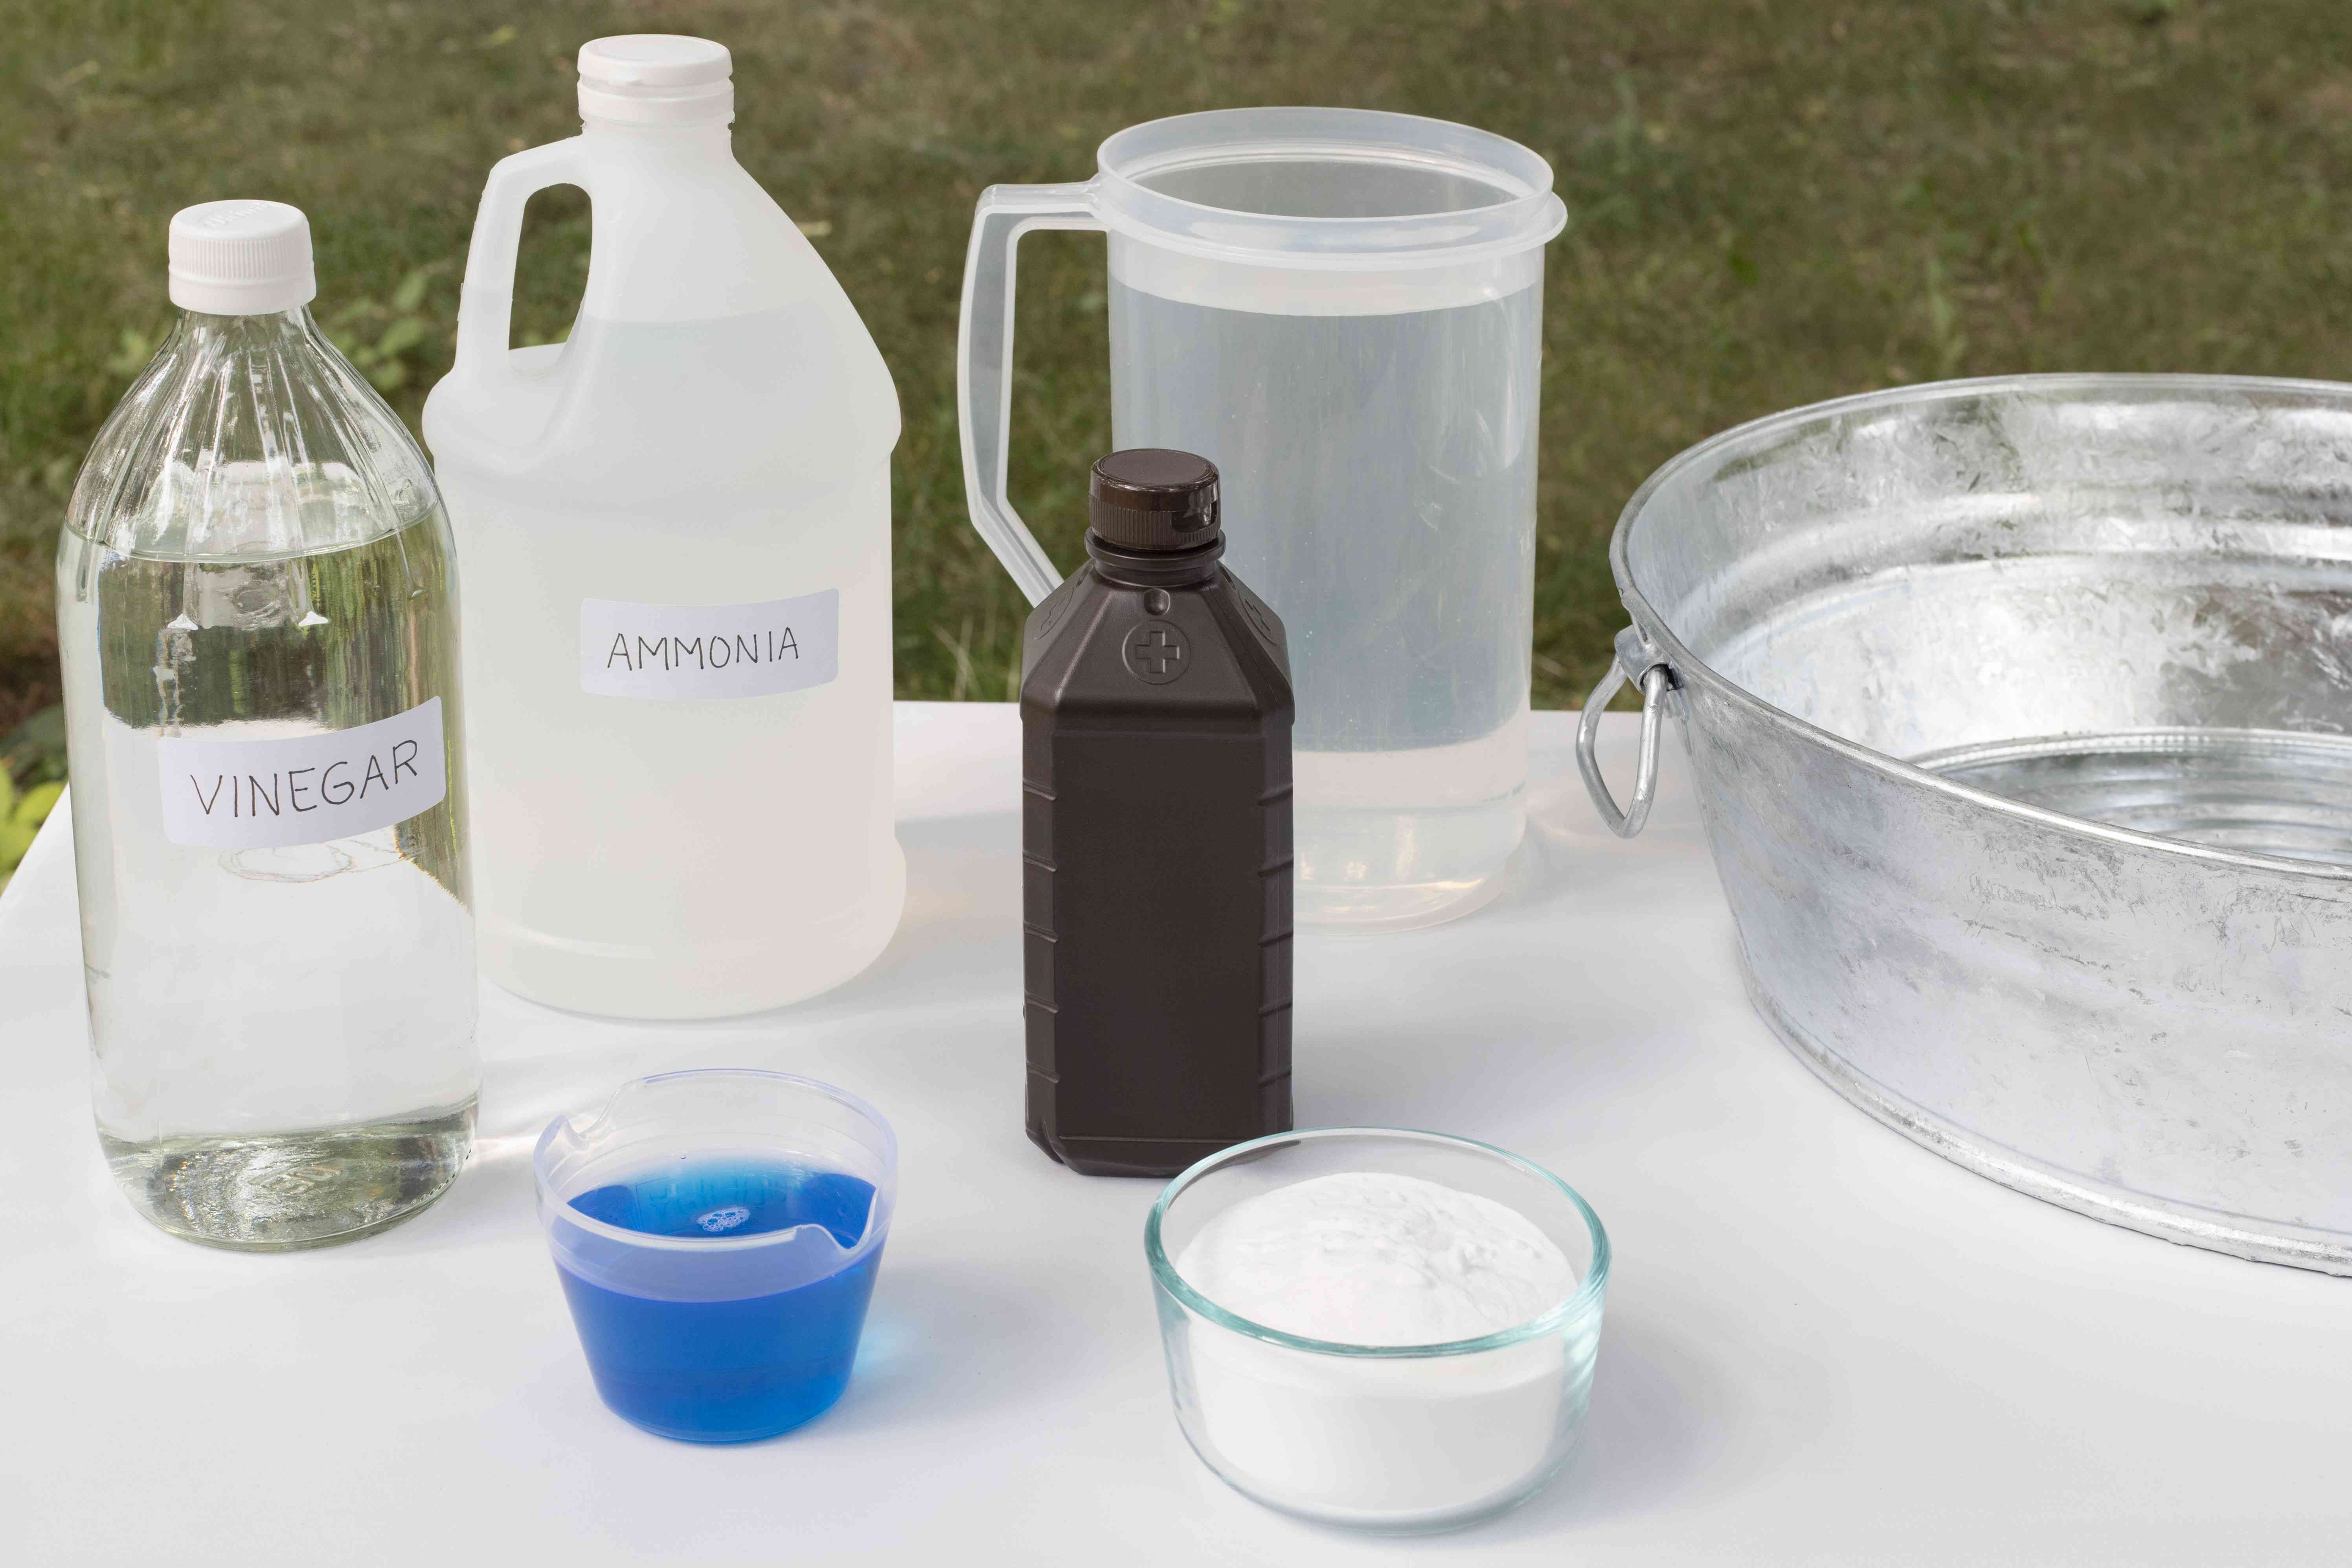 Materials and tools to remove skunk odor from clothes and camping equipment